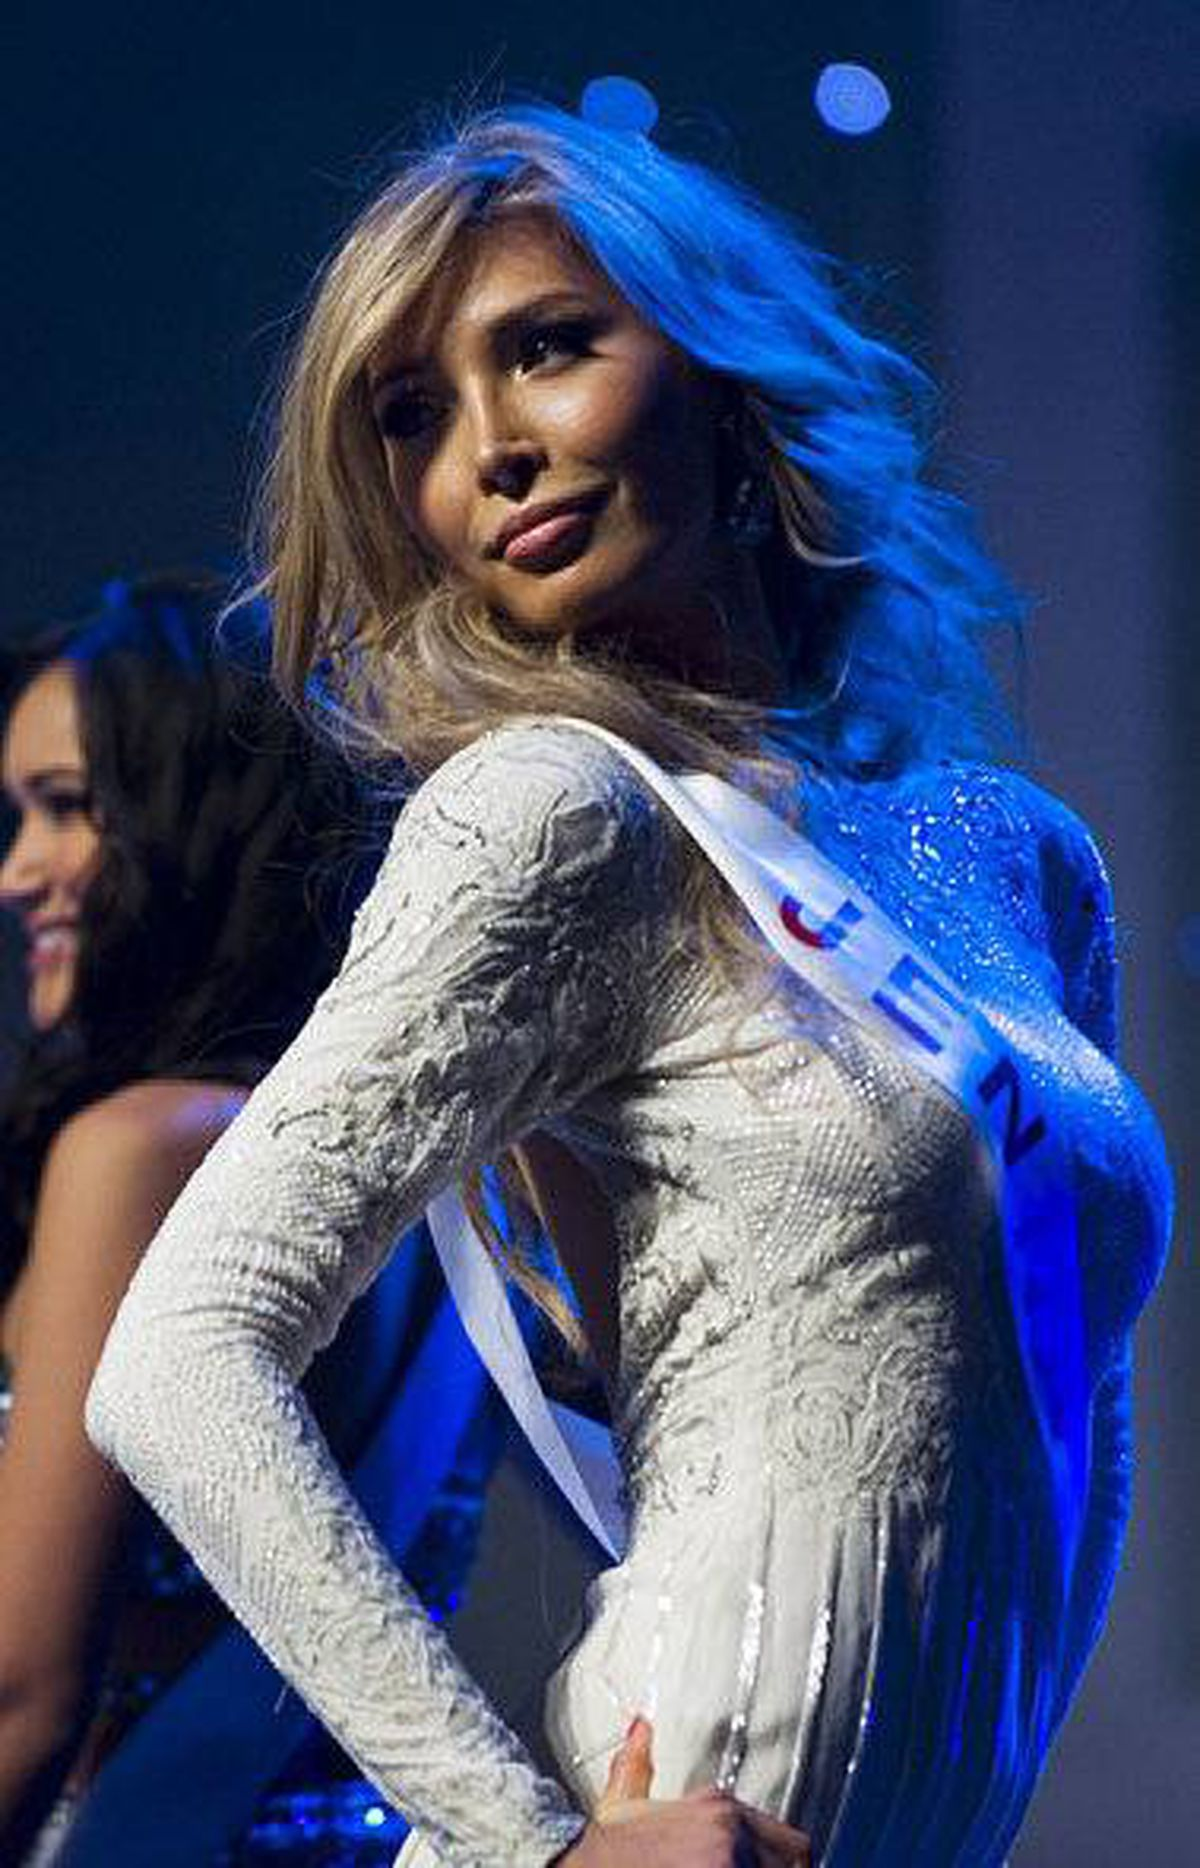 Jenna Talackova is seen on stage at the Miss Universe Canada contest in Toronto on May 17, 2012.